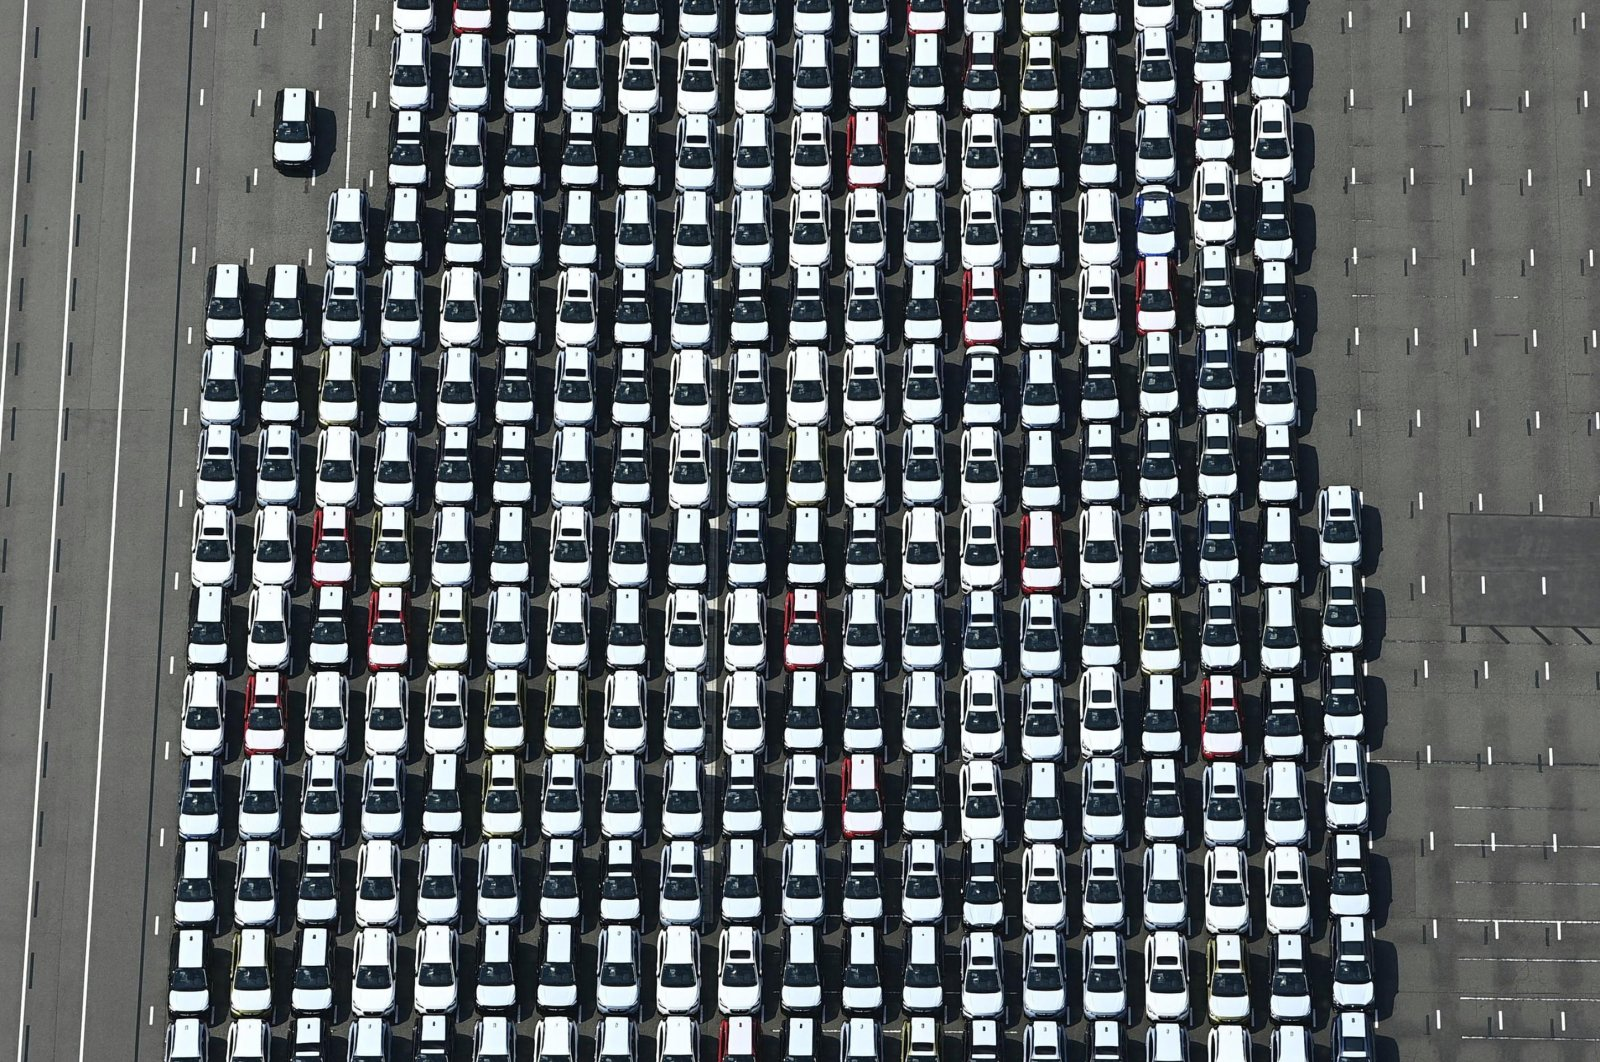 Vehicles are parked before being exported, at a logistics center in Kawasaki, near Tokyo, Japan, Aug. 17, 2020. (AP Photo)